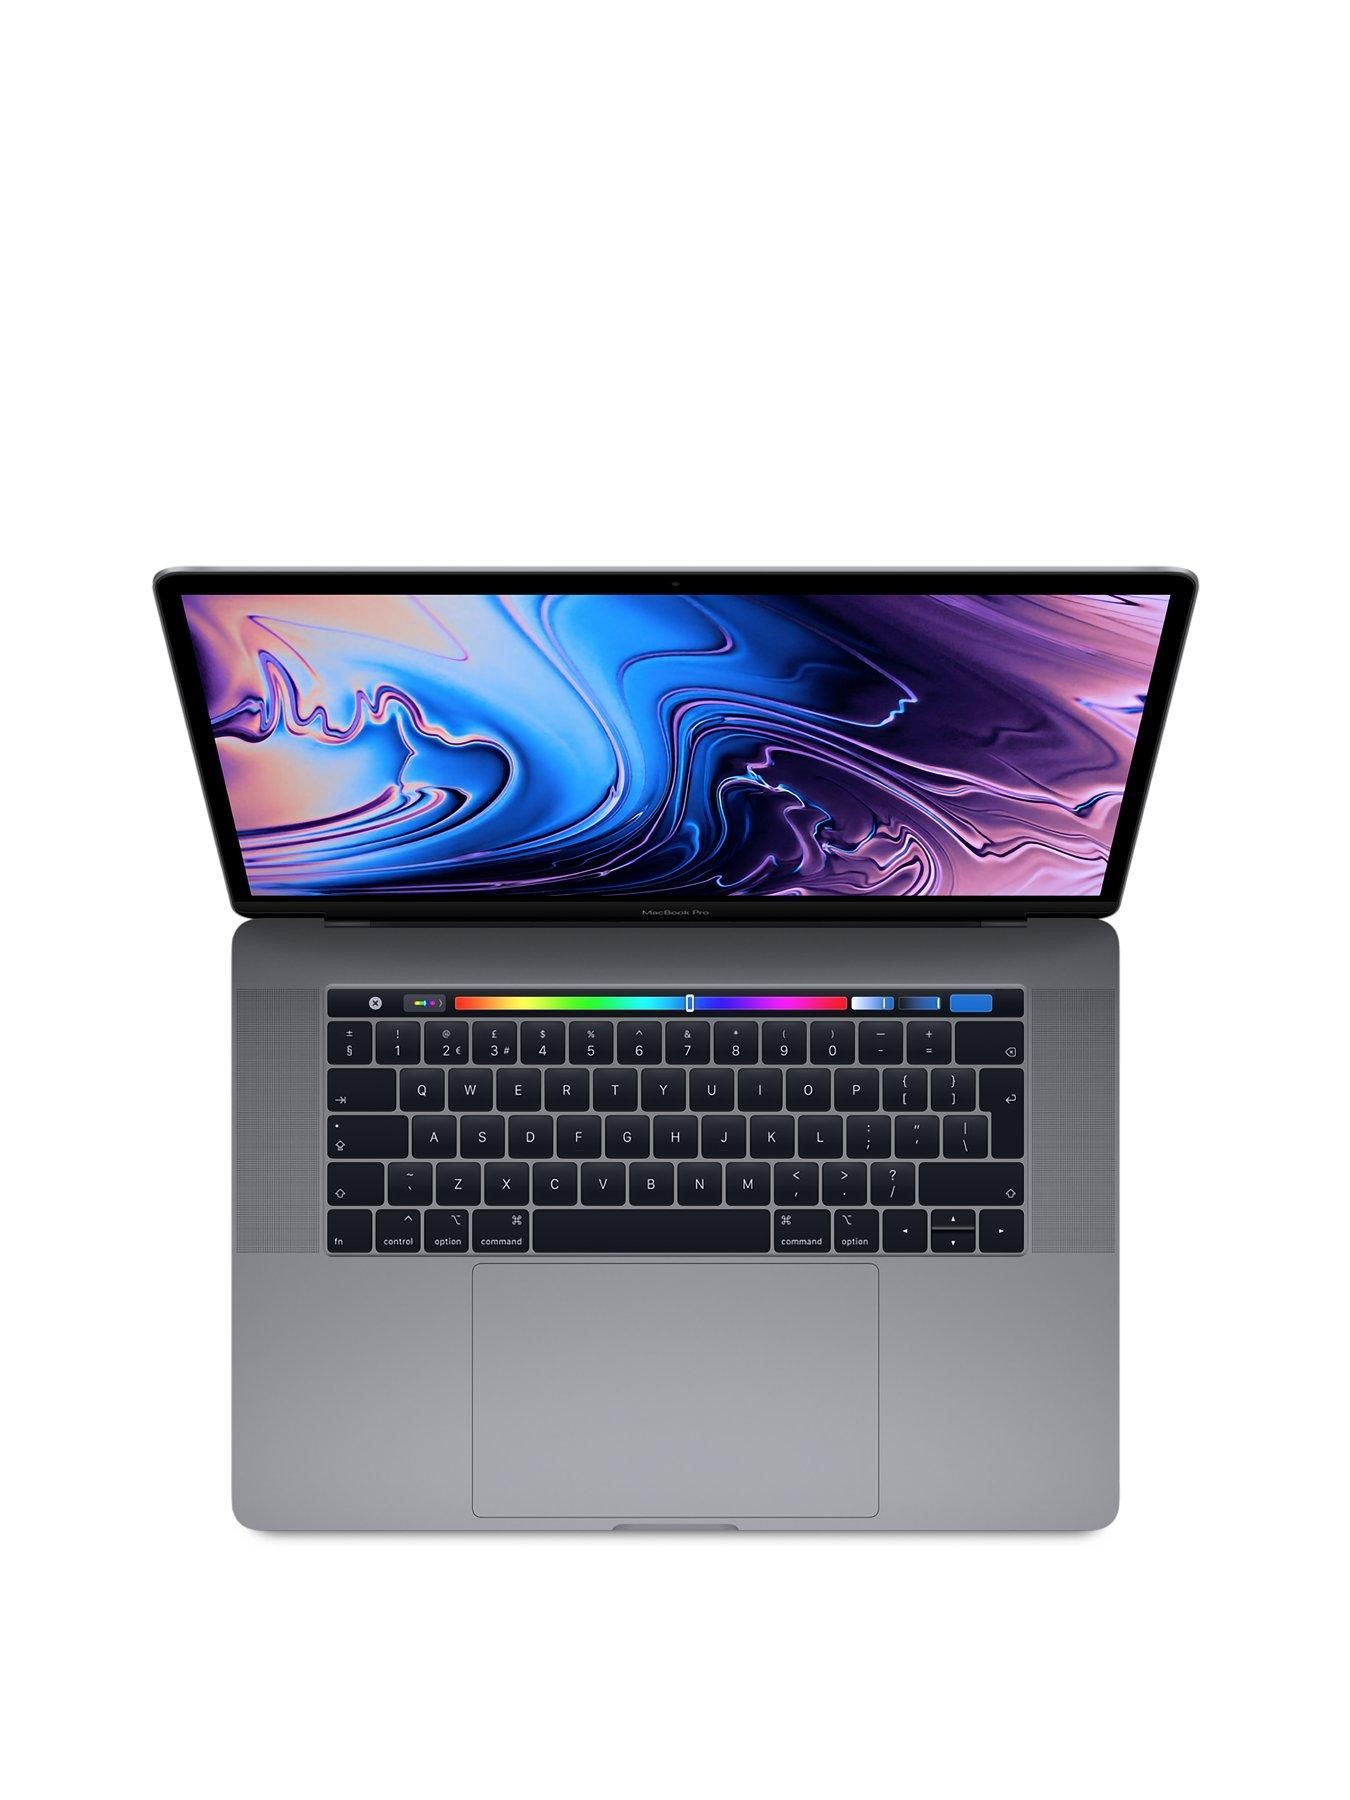 Apple MacBook Pro (2018) 15 inch with Touch Bar, 2.6GHz 6-core 8th-gen Intel® Core™ i7 Processor, 16Gb RAM, 512Gb SSD with Optional MS Office 365 Home - Space G… in 2020 | Macbook pro, Apple macbook pro, Macbook pro touch bar